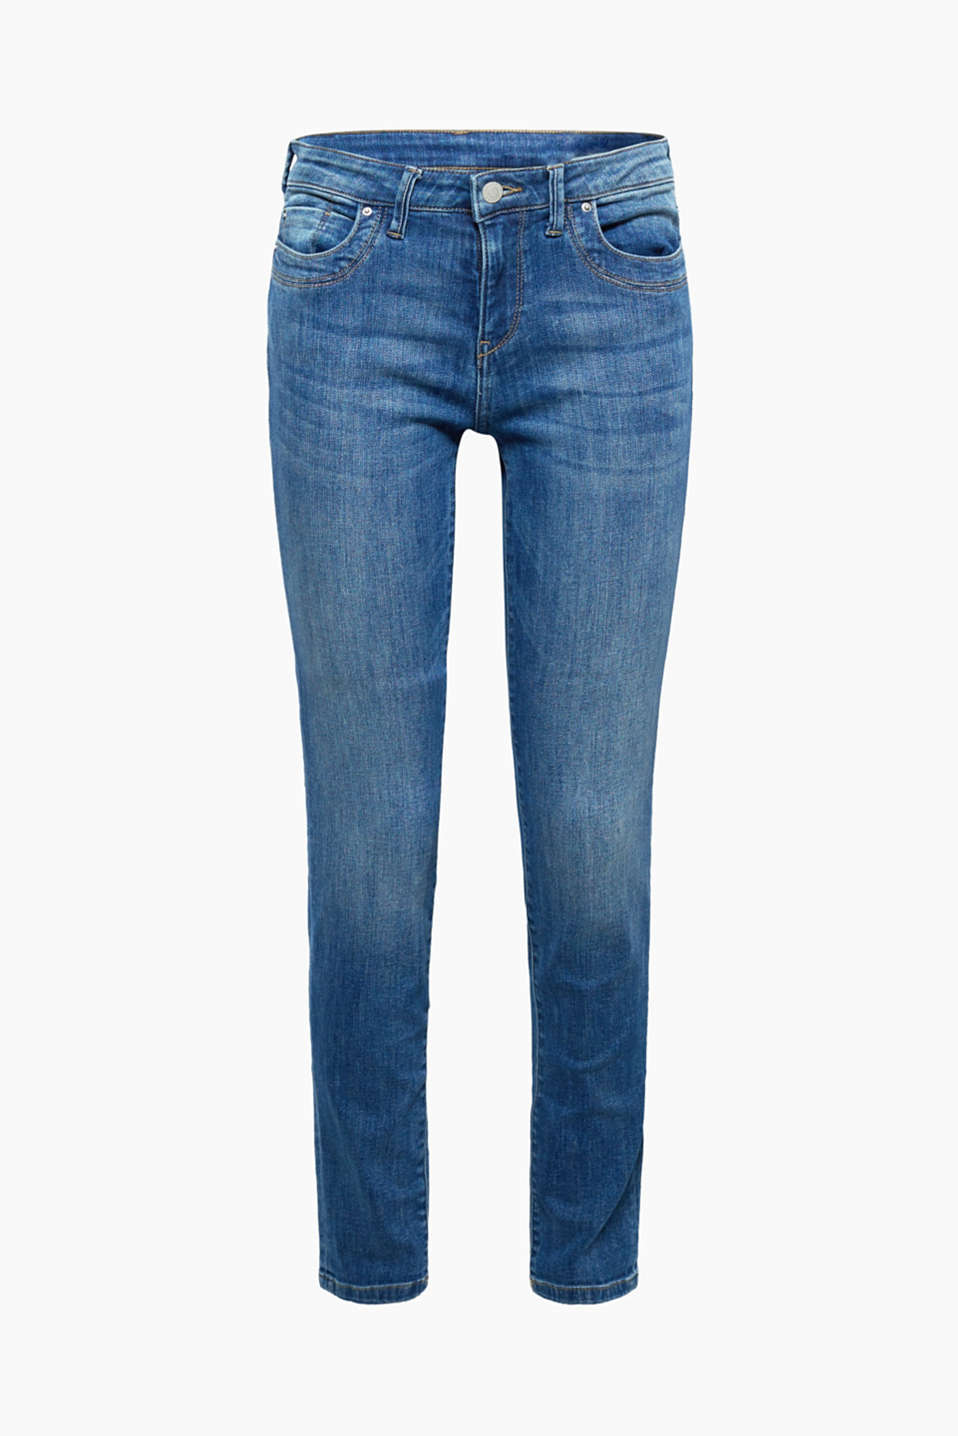 Containing premium, environmentally-friendly organic cotton: these skin-tight stretch jeans look cool and sexy!